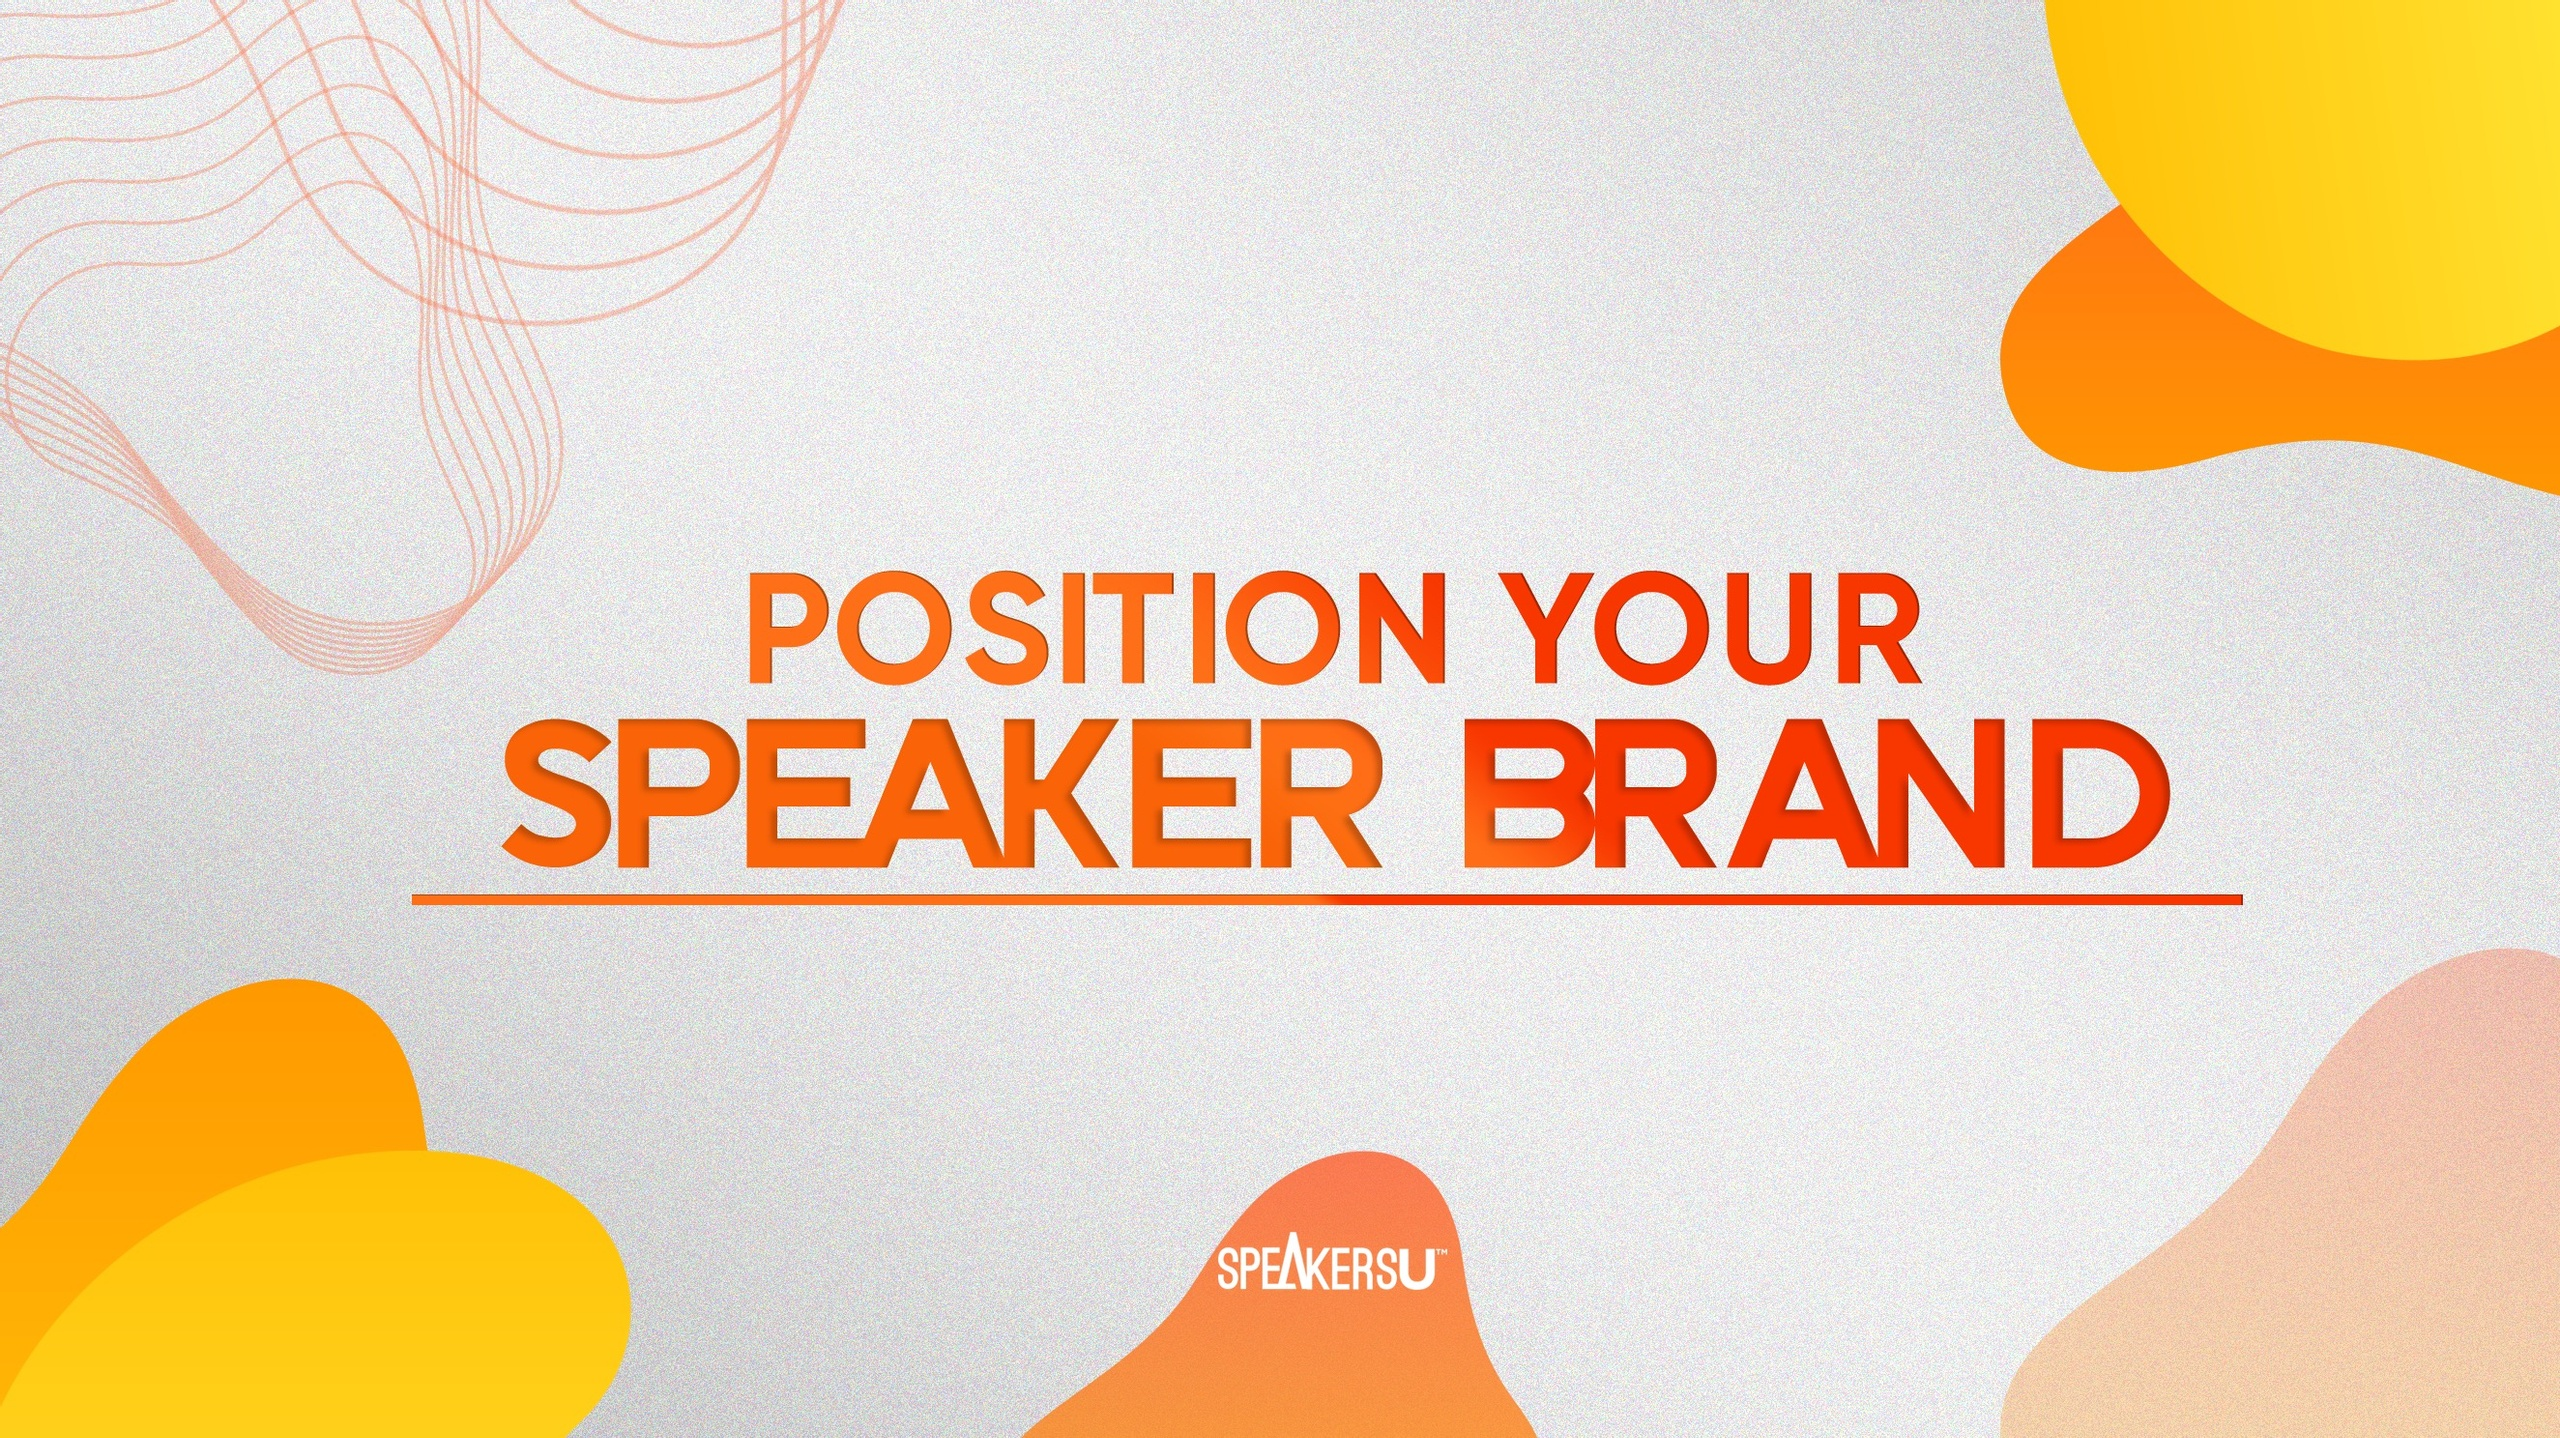 How To Position Your Speaker Brand